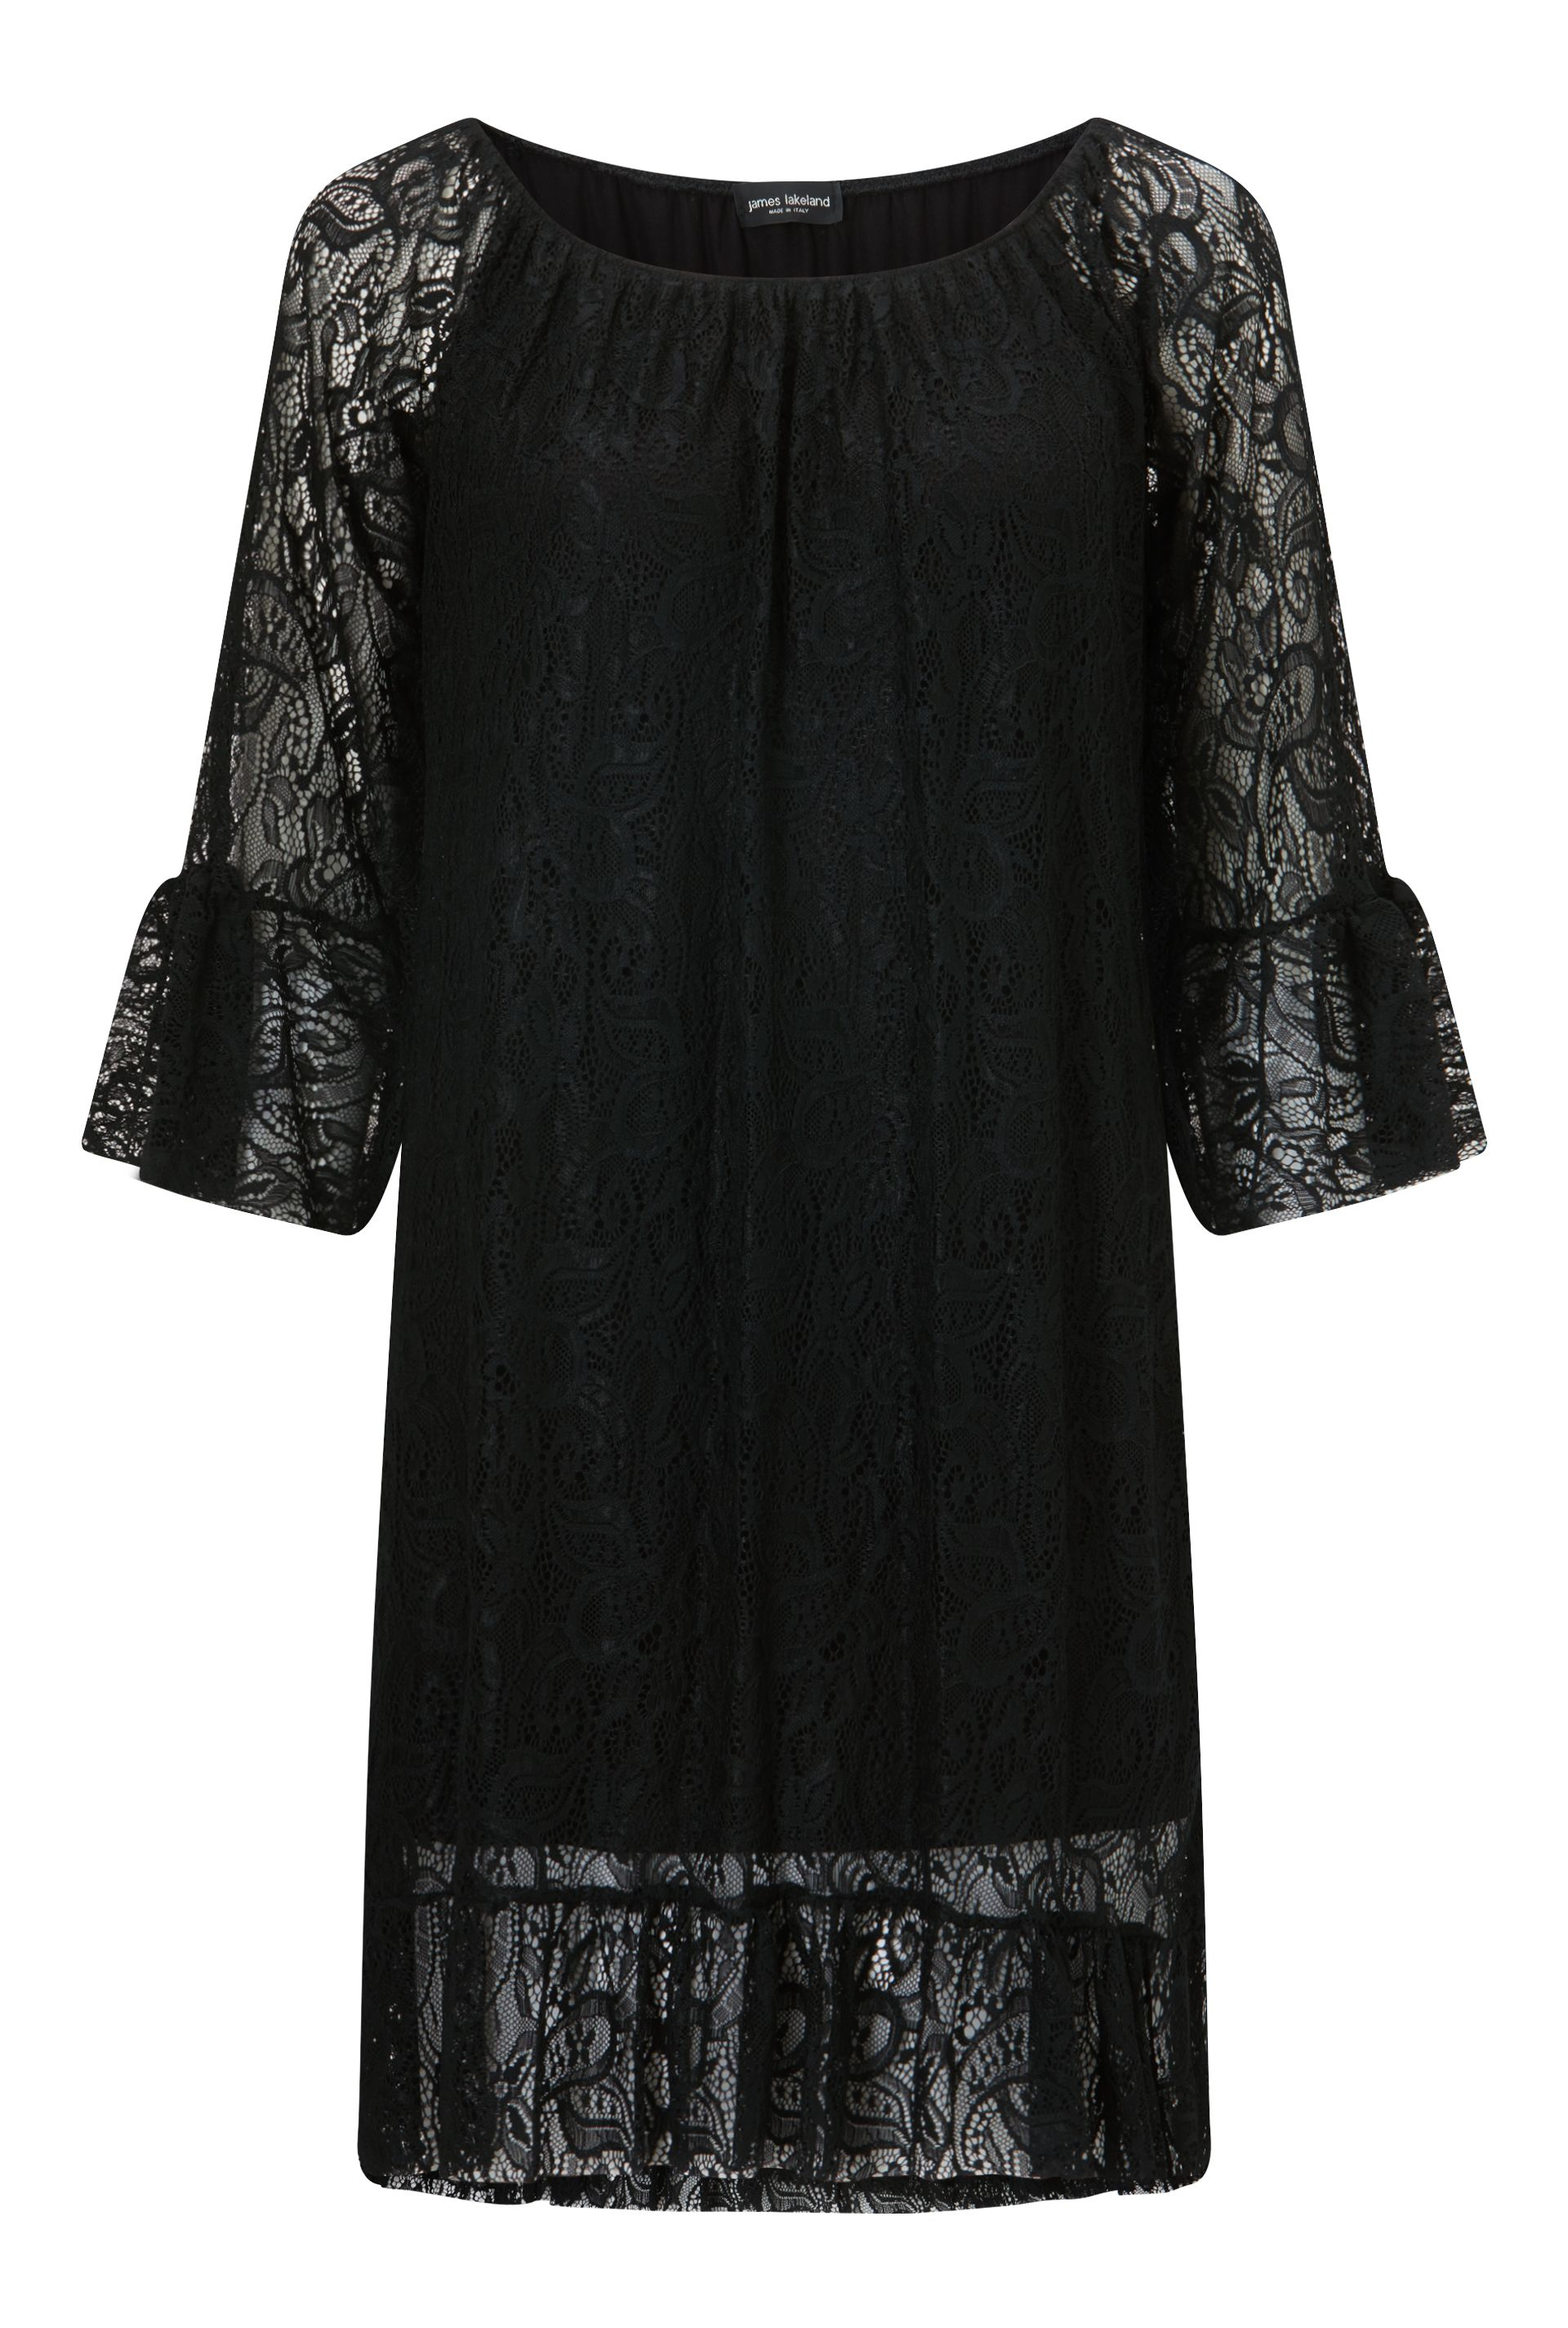 James Lakeland Lace Dress, Black